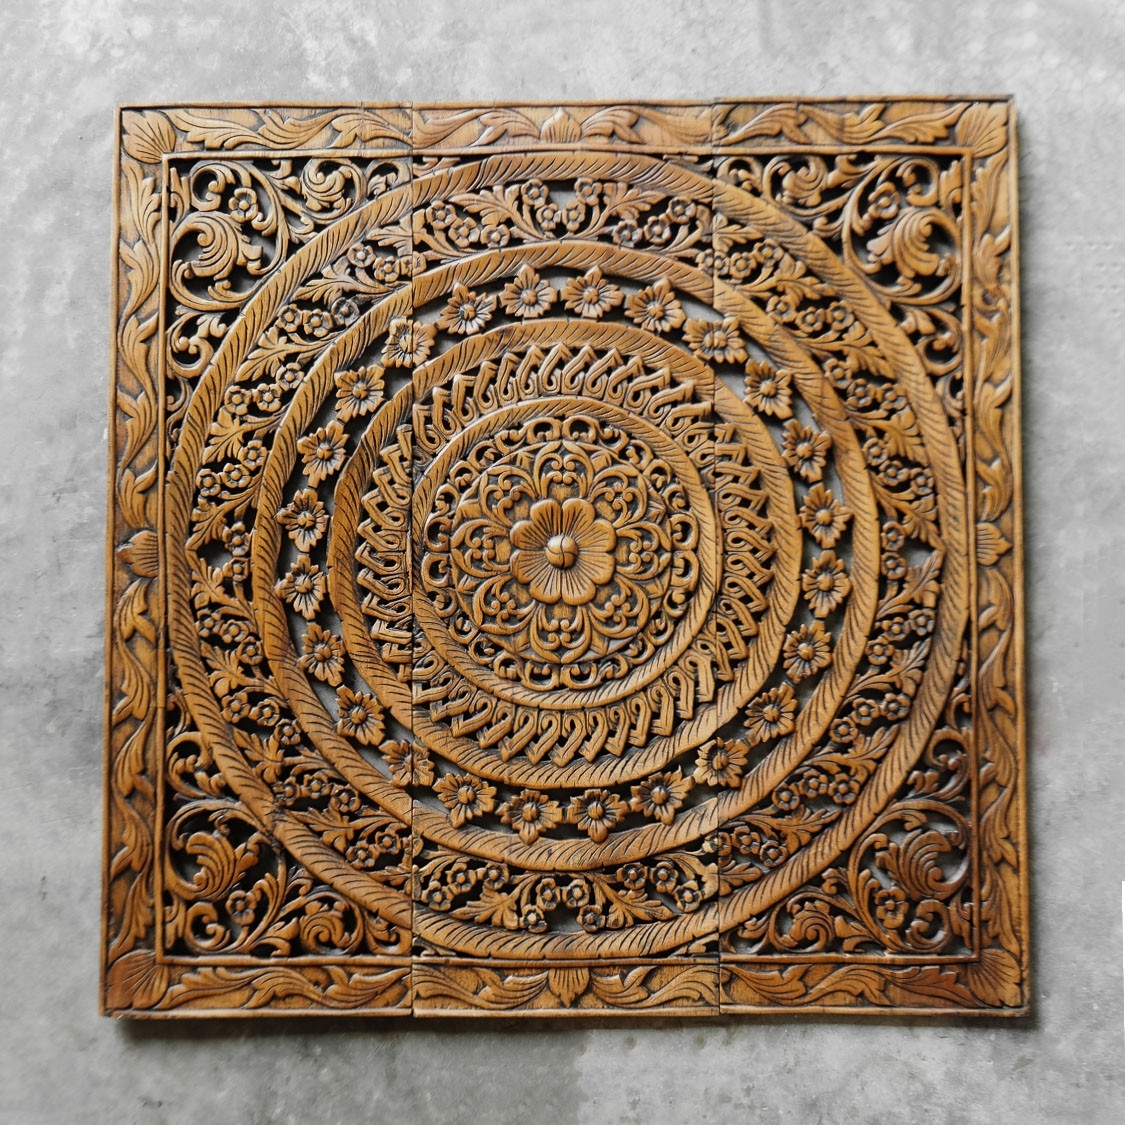 Carved Wall Decor Elegant Moroccan Decent Wood Carving Wall Art Pertaining To Most Current Wood Carved Wall Art (View 18 of 20)